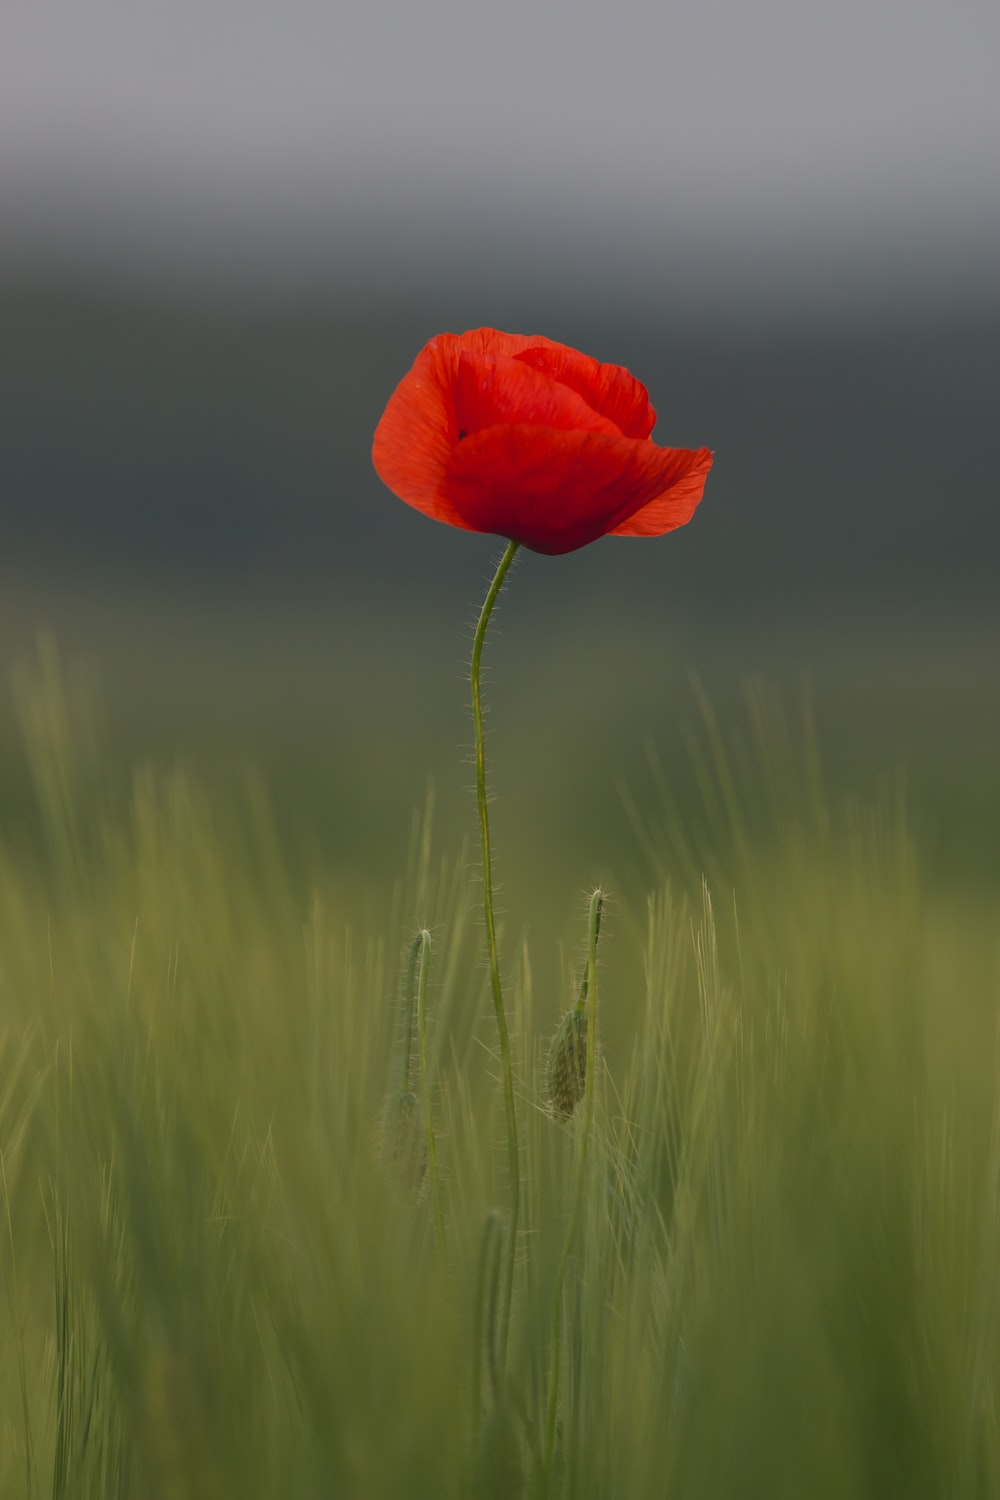 Poppy Flower Pictures Hd Download Free Images On Unsplash